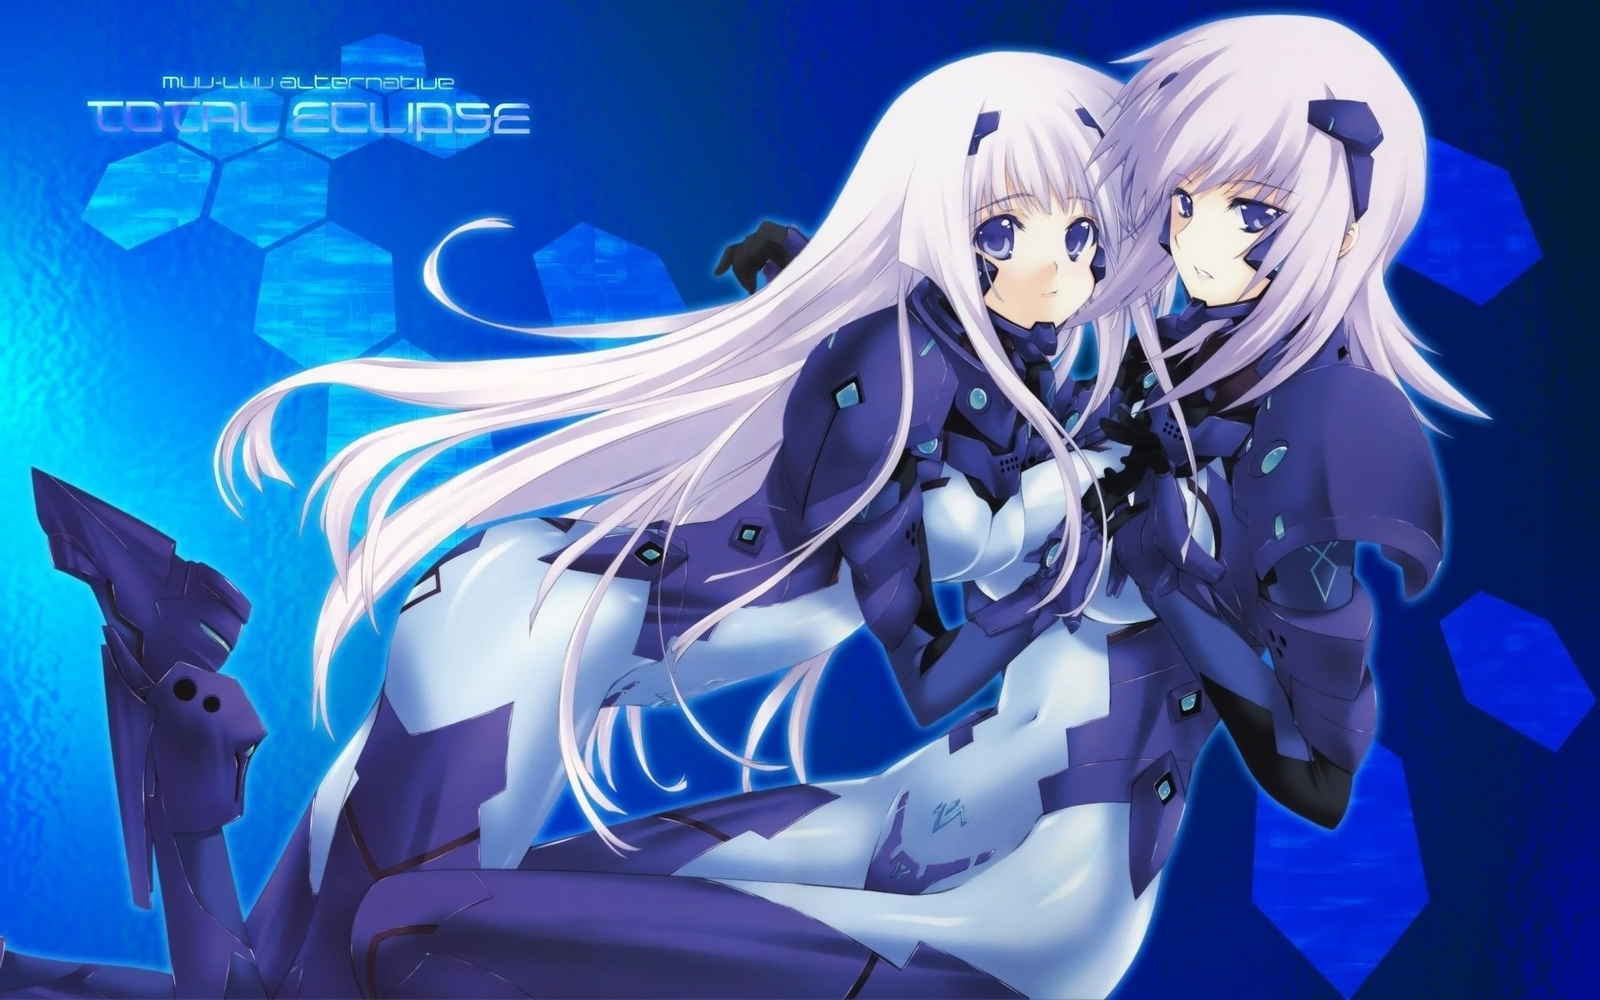 http://4.bp.blogspot.com/-QP0M8xZeGUs/UDV7j25dQoI/AAAAAAAAOrI/NV1UBdWtUiI/s1600/Muv_Luv_Alternative_Total_Eclipse_Anime_Wallpaper.jpg